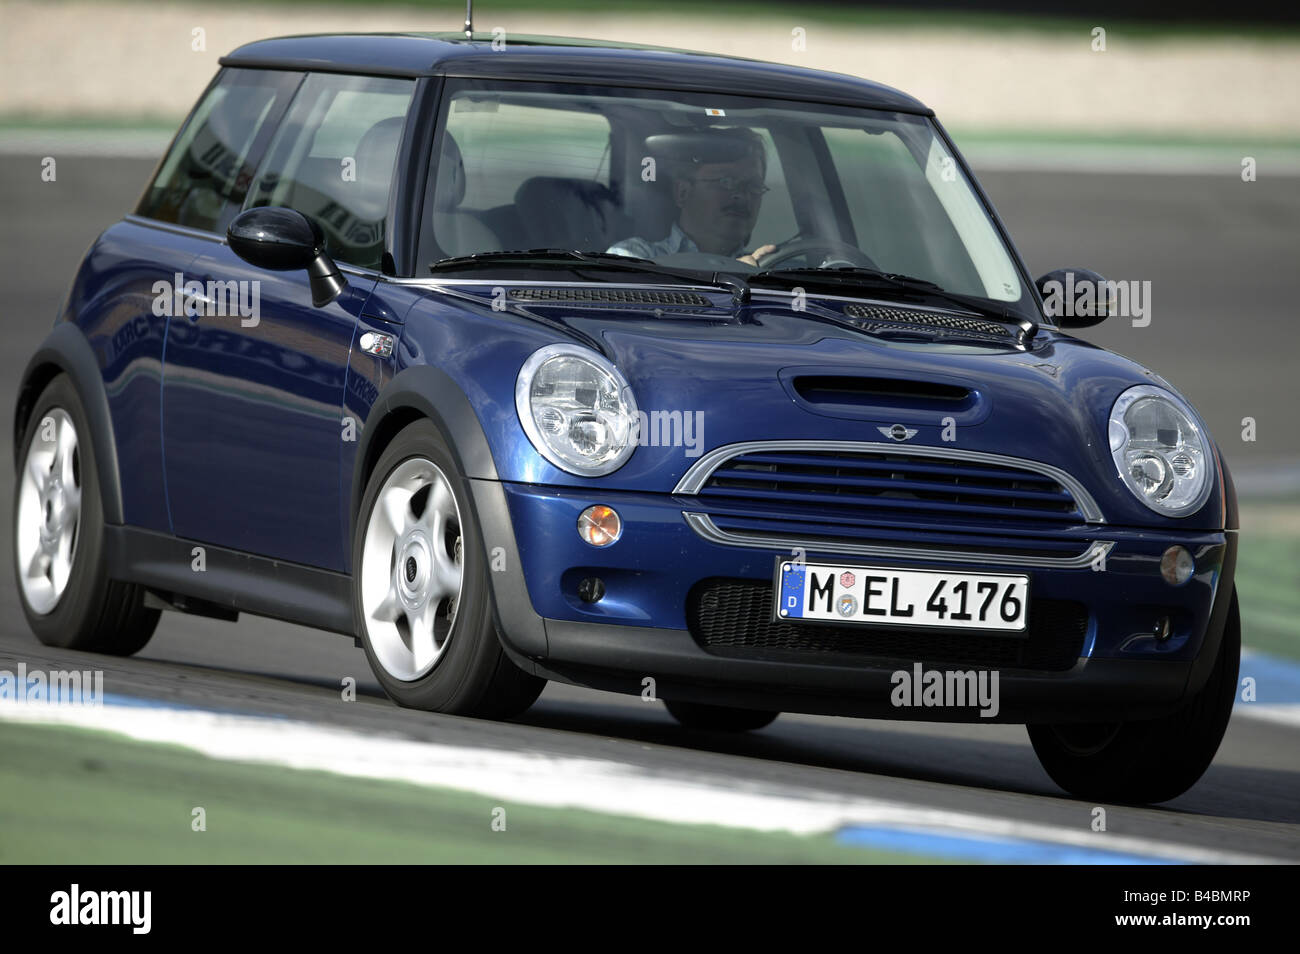 Car bmw mini cooper s miniapprox s limousine model year 2002